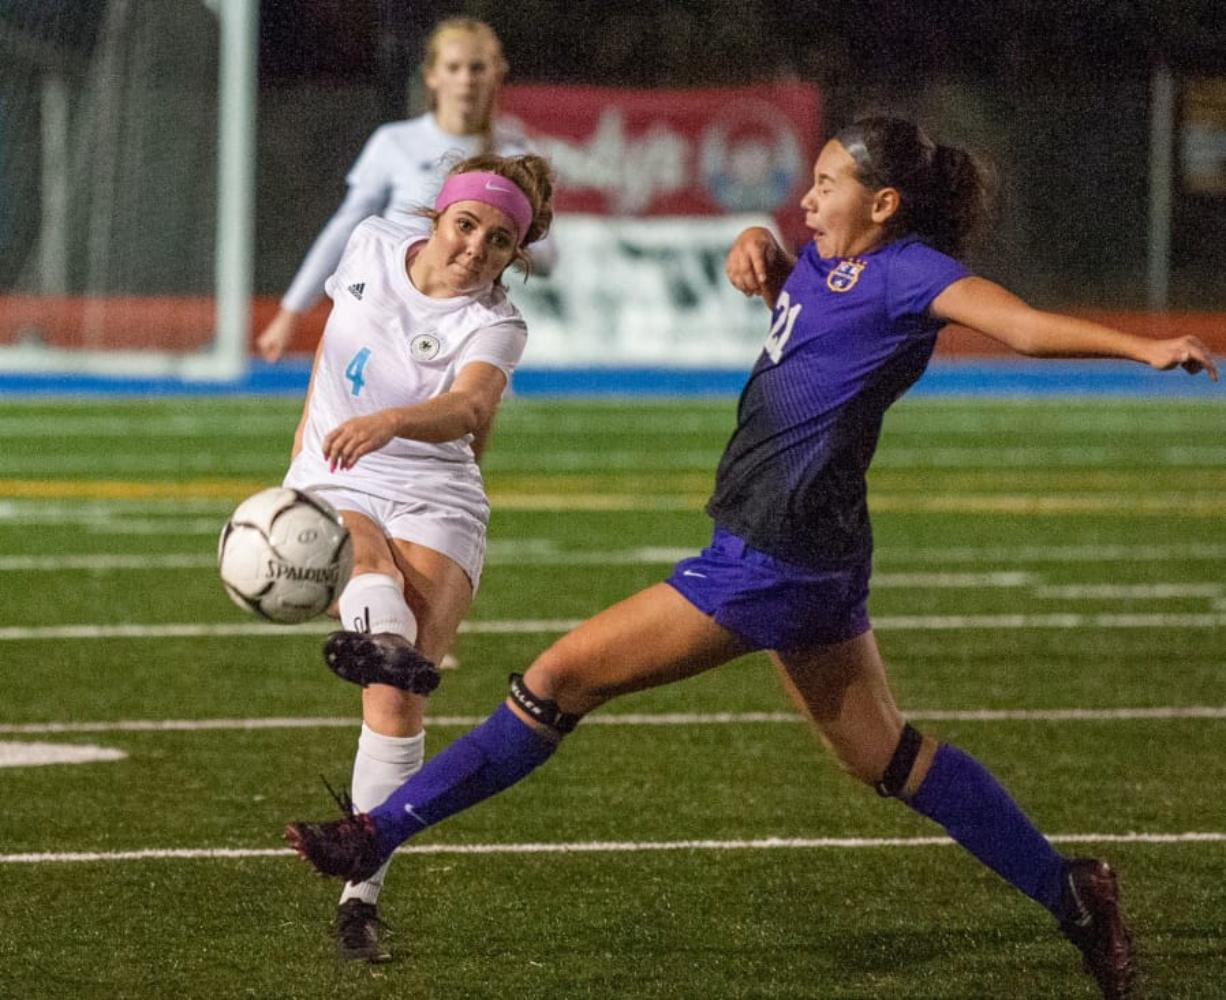 Hockinson's Kati Waggoner makes a pass as Columbia River's Andie Buckley tries to block it.